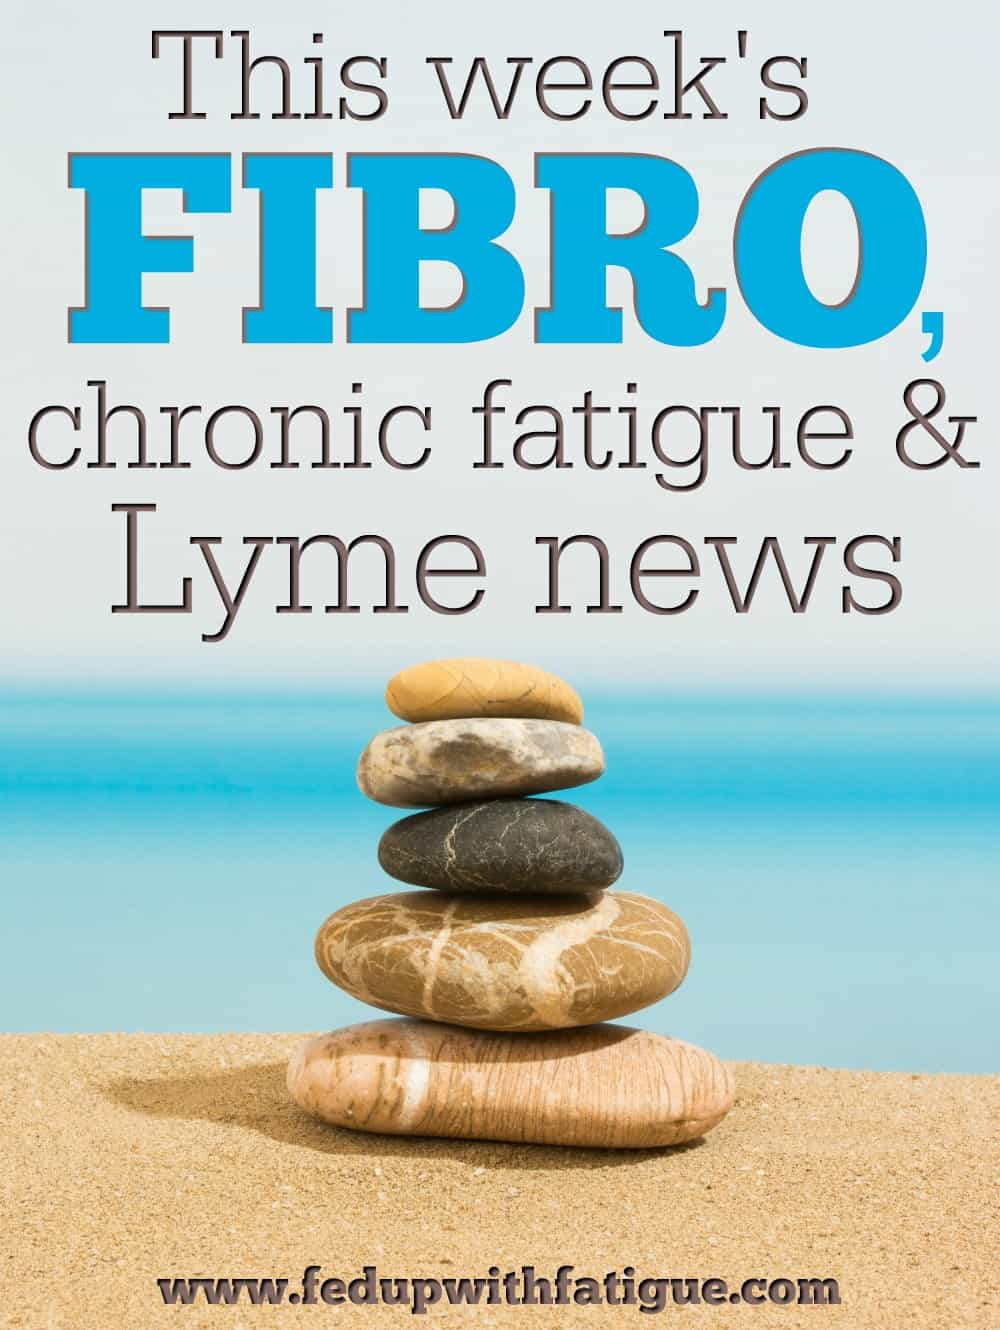 Sept. 1, 2017 fibromyalgia, chronic fatigue and Lyme news | Fed Up with Fatigue